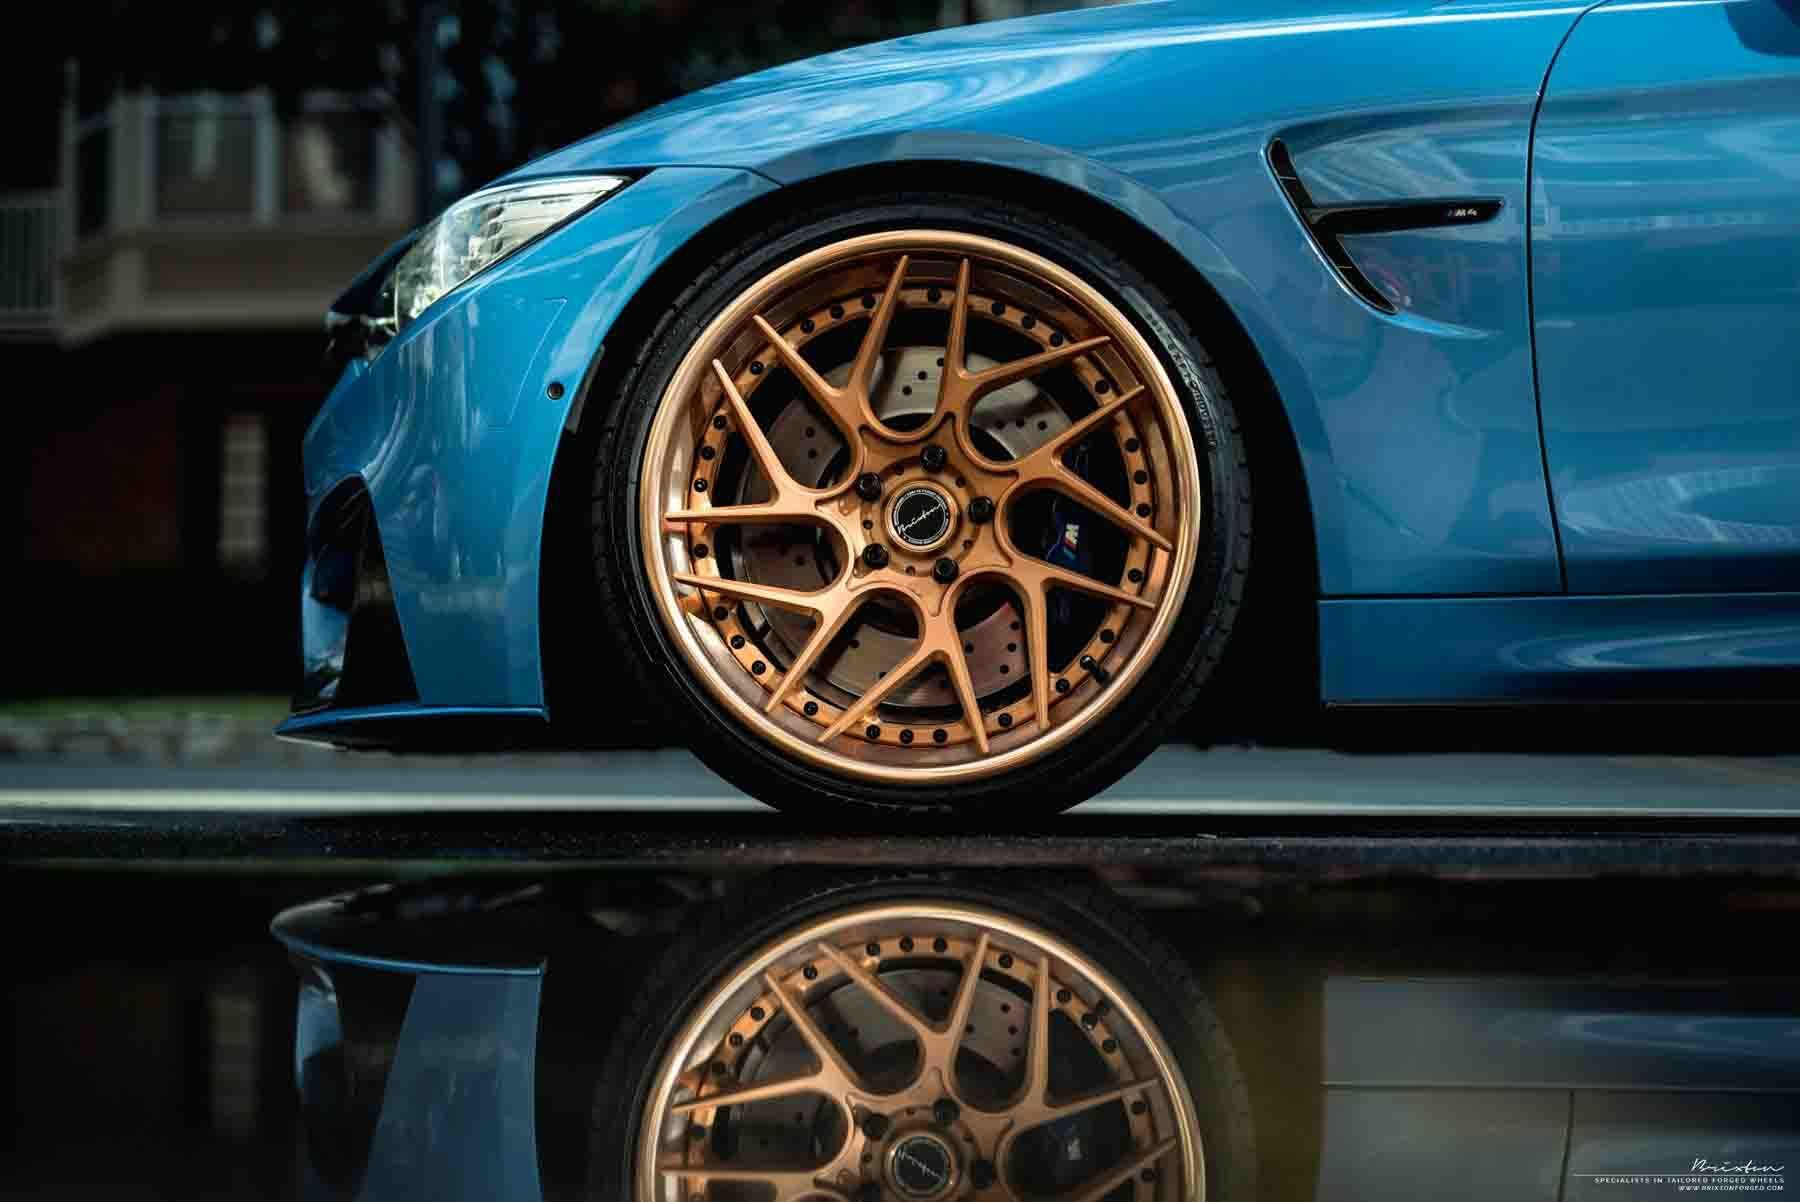 images-products-1-2622-232974910-yas-marina-blue-bmw-m4-f82-brixton-forged-cm7-targa-series-forged-concave-wheels-rose-gold-5-180.jpg